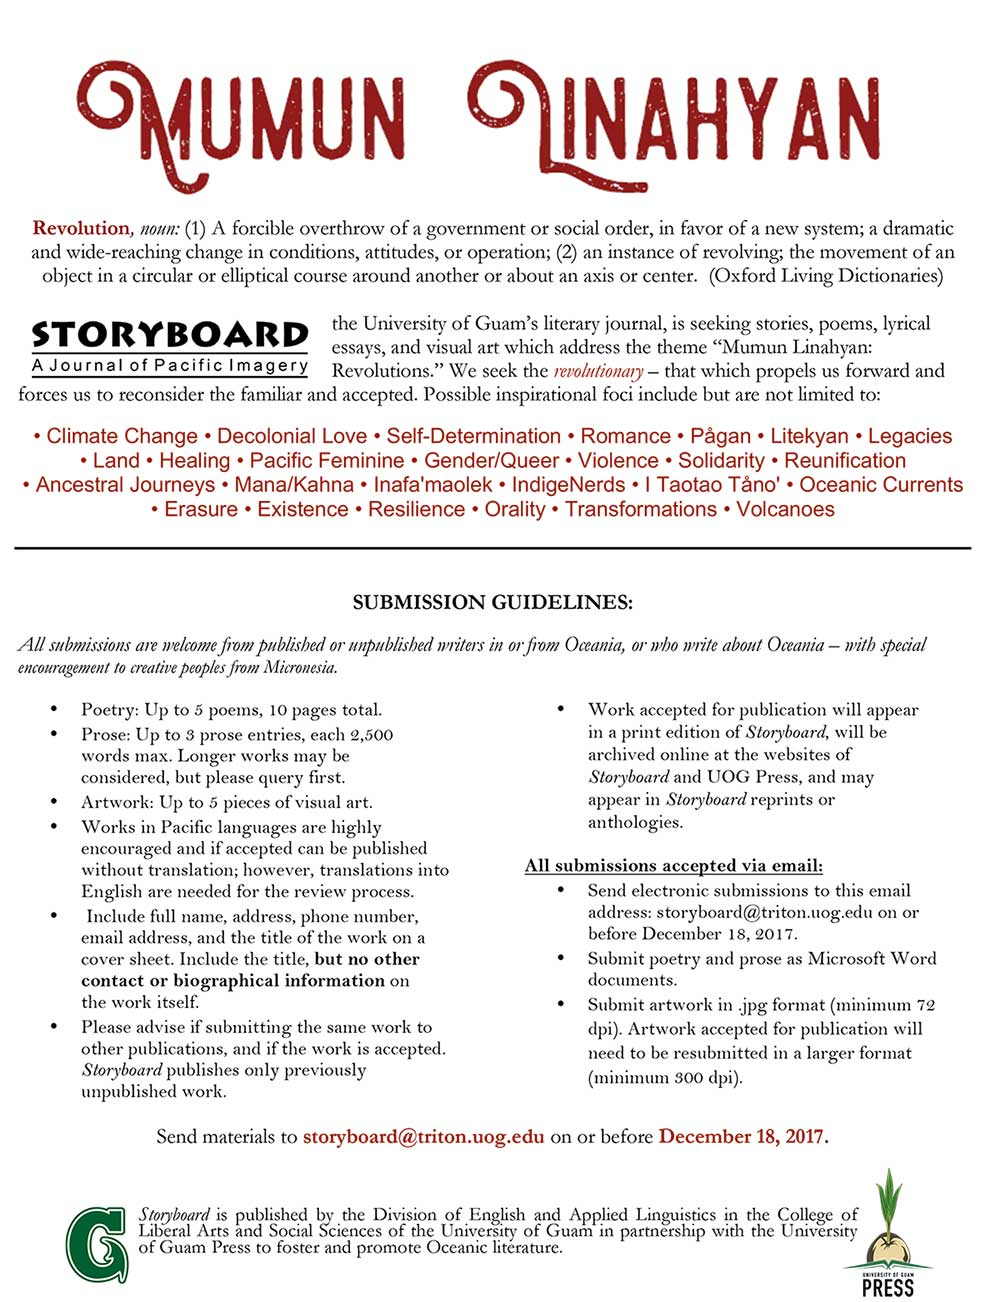 Call for submissions and guidelines for Storyboard Journal 2017